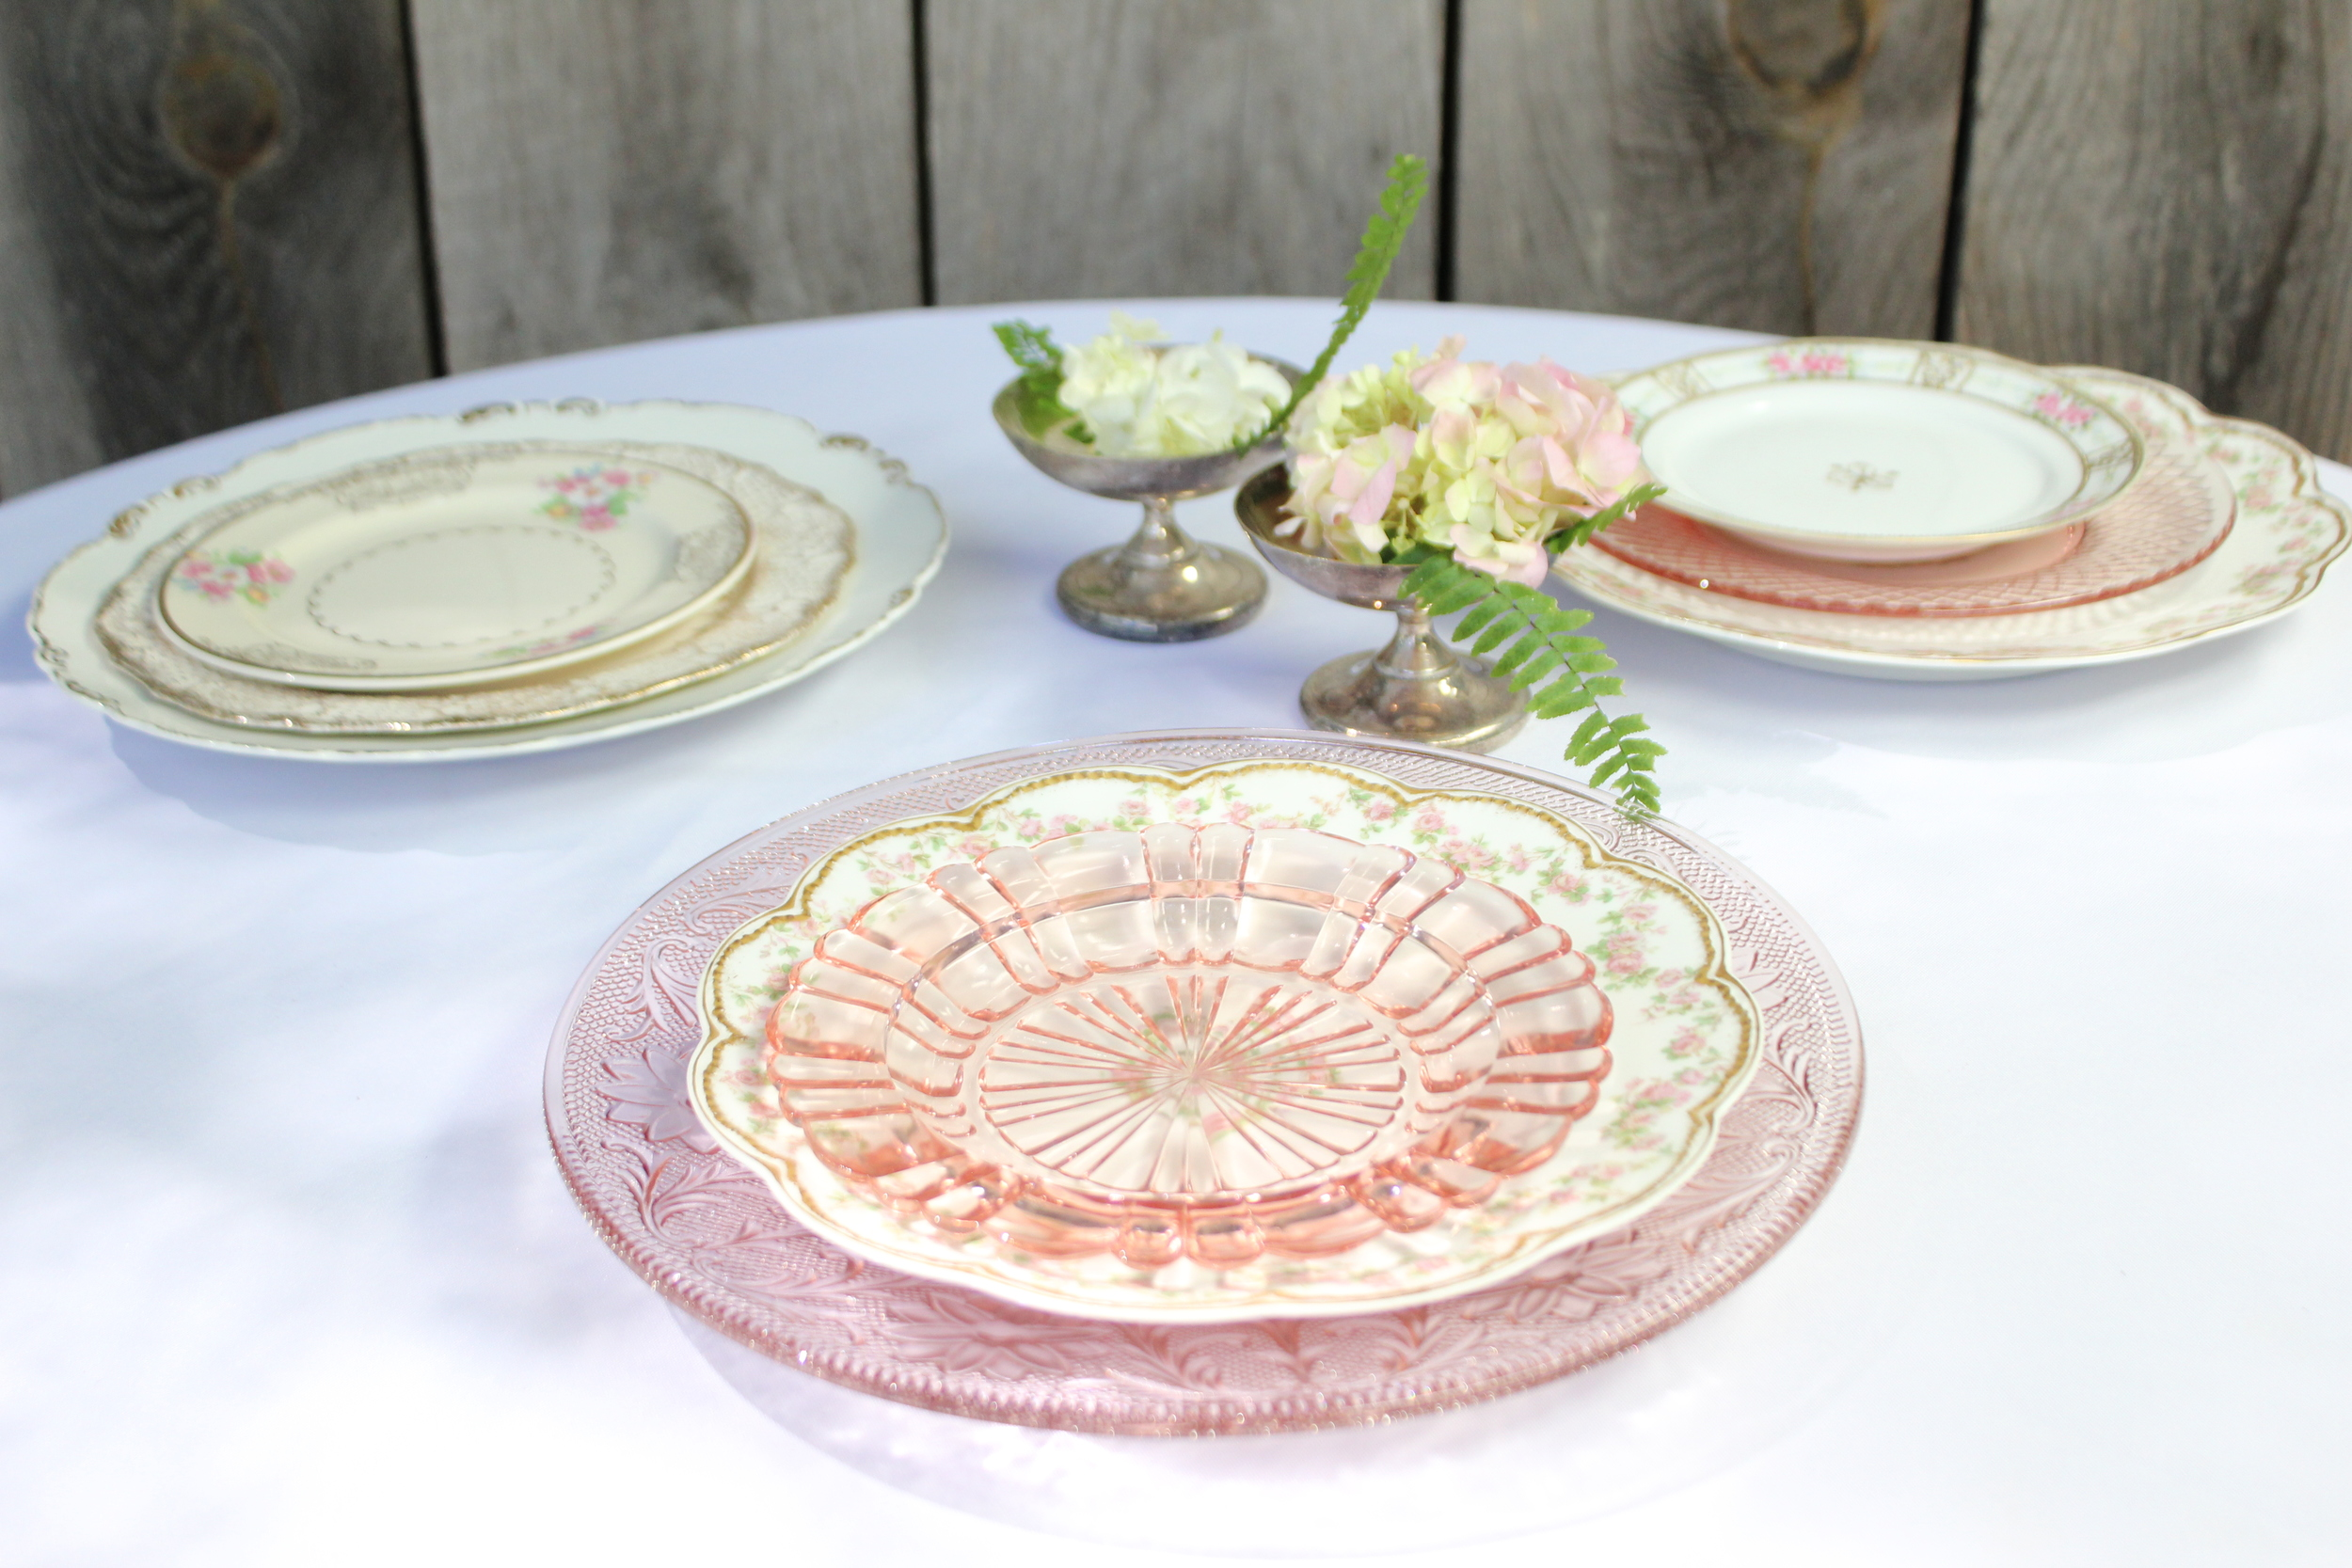 Vintage pink china and Depression glass plates